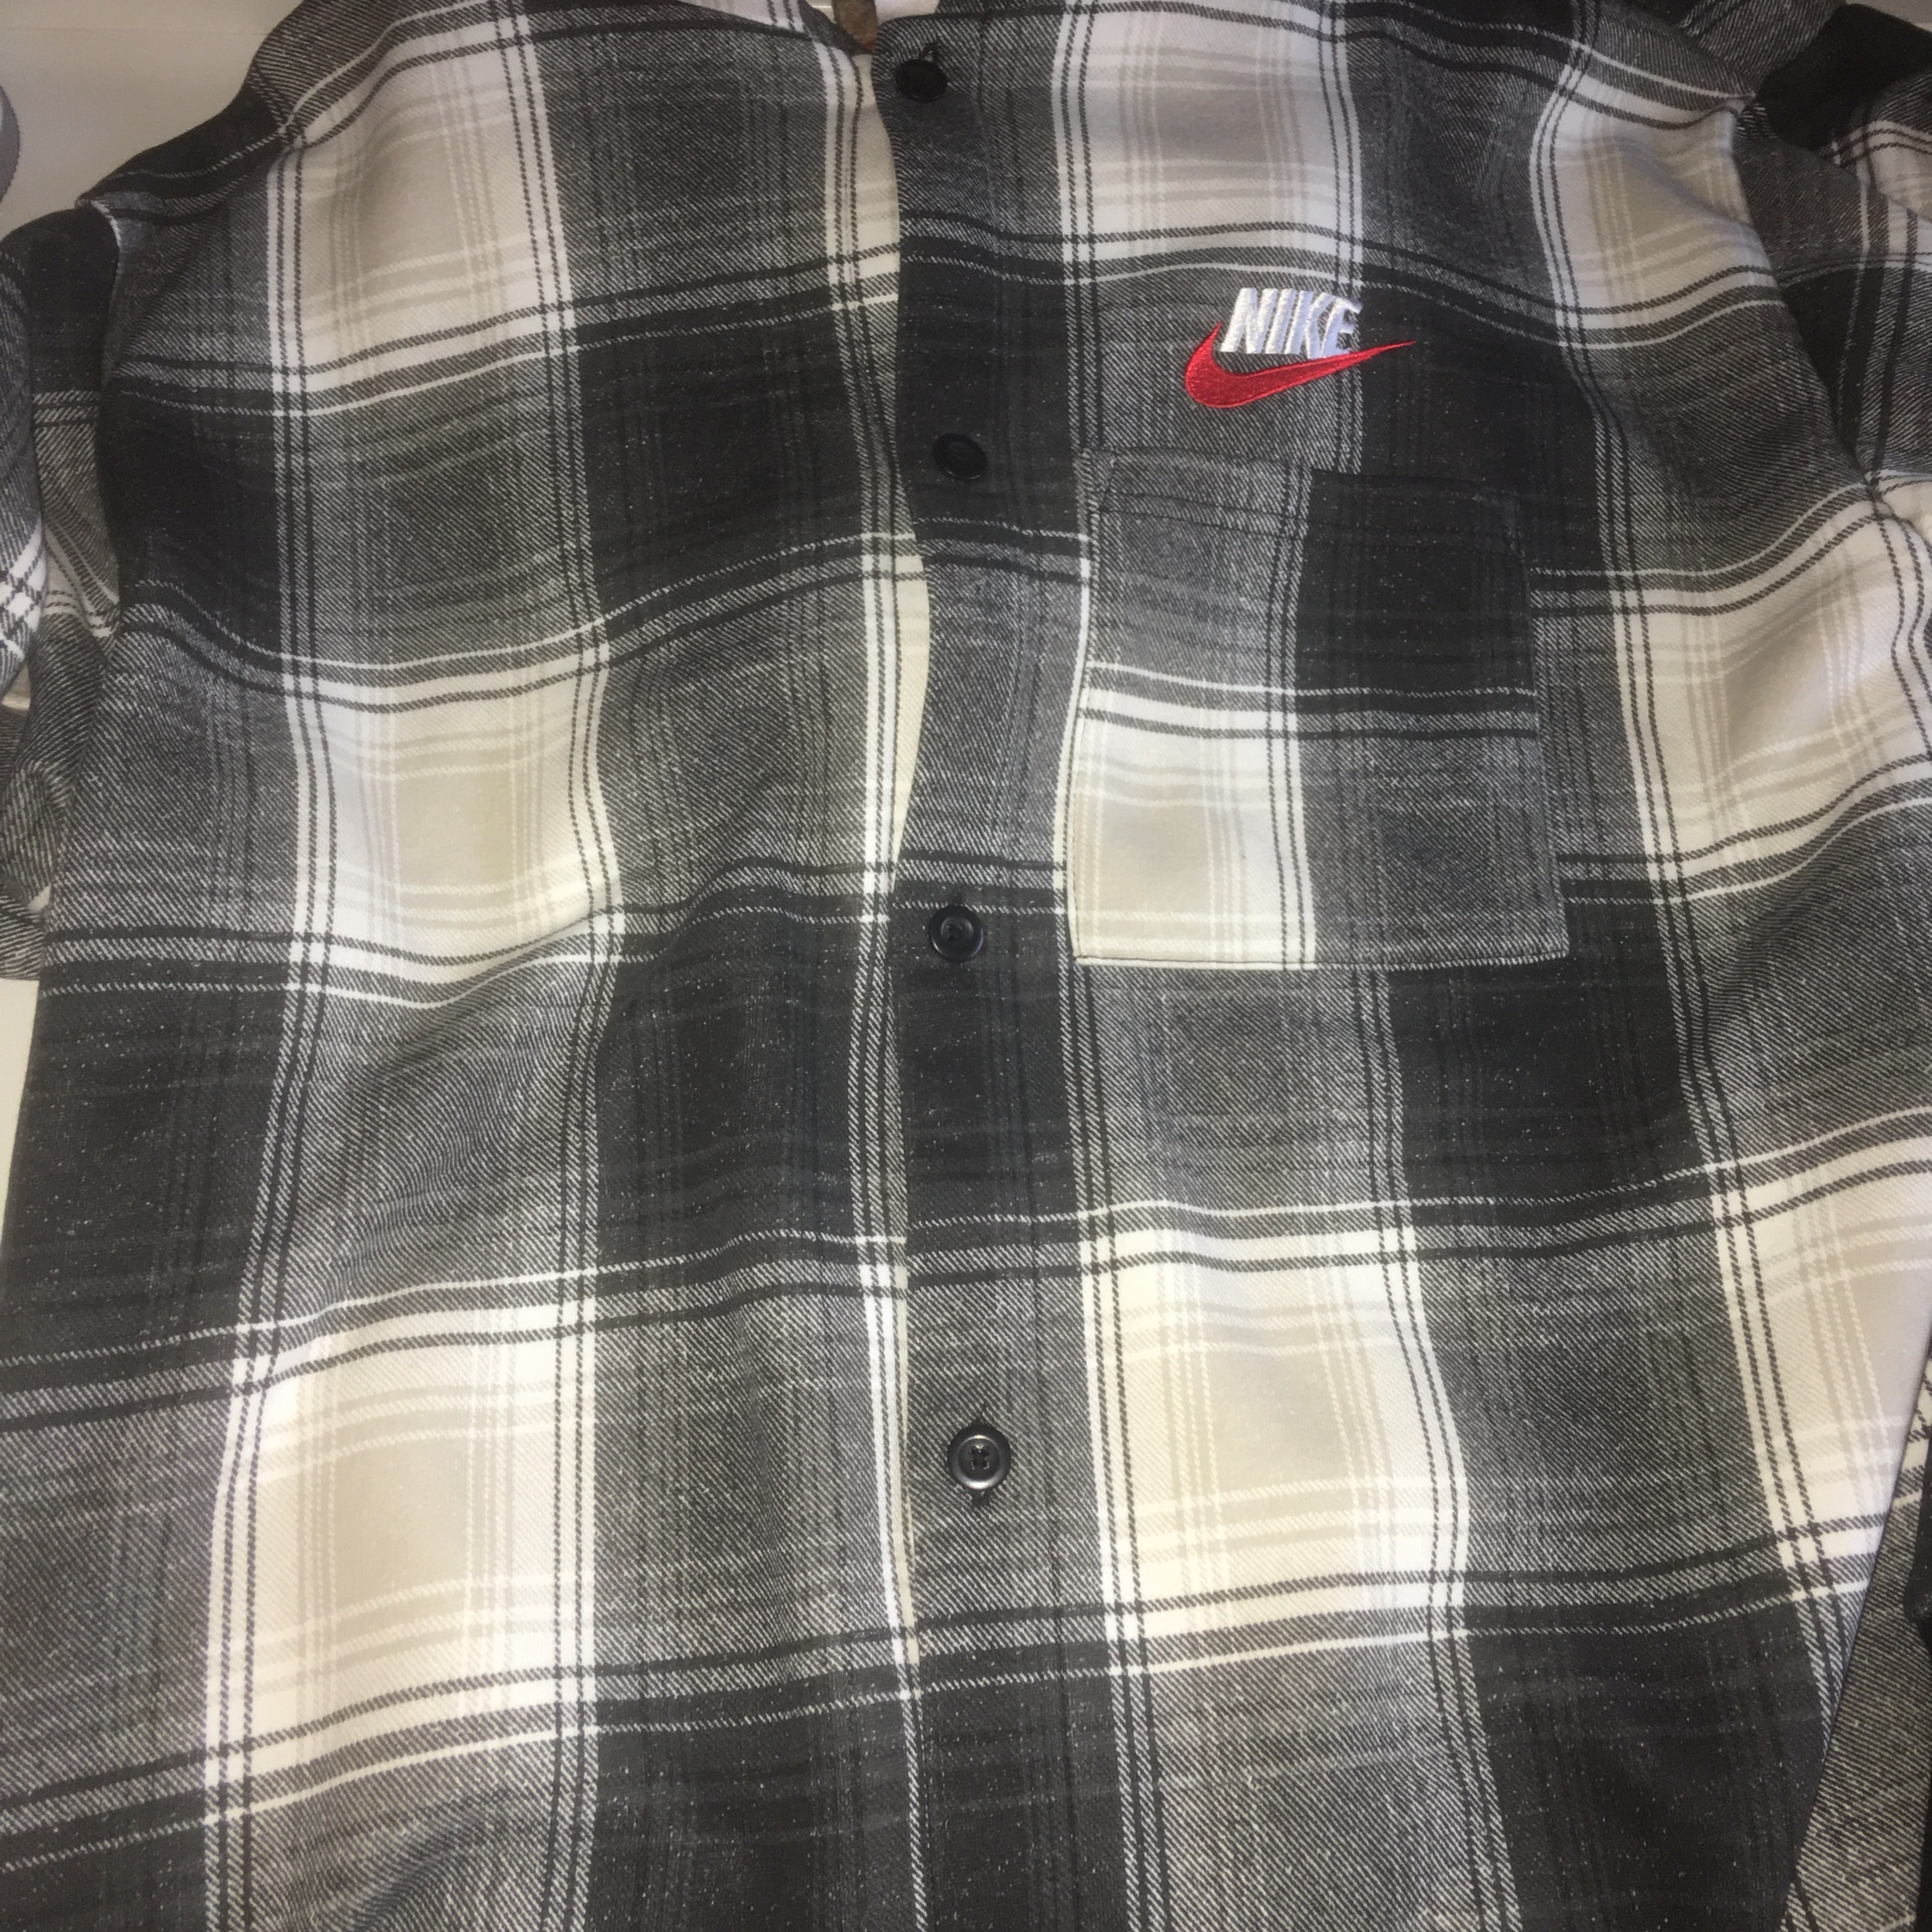 cheap sale great prices to buy Supreme Nike Black Plaid Hooded Sweatshirt